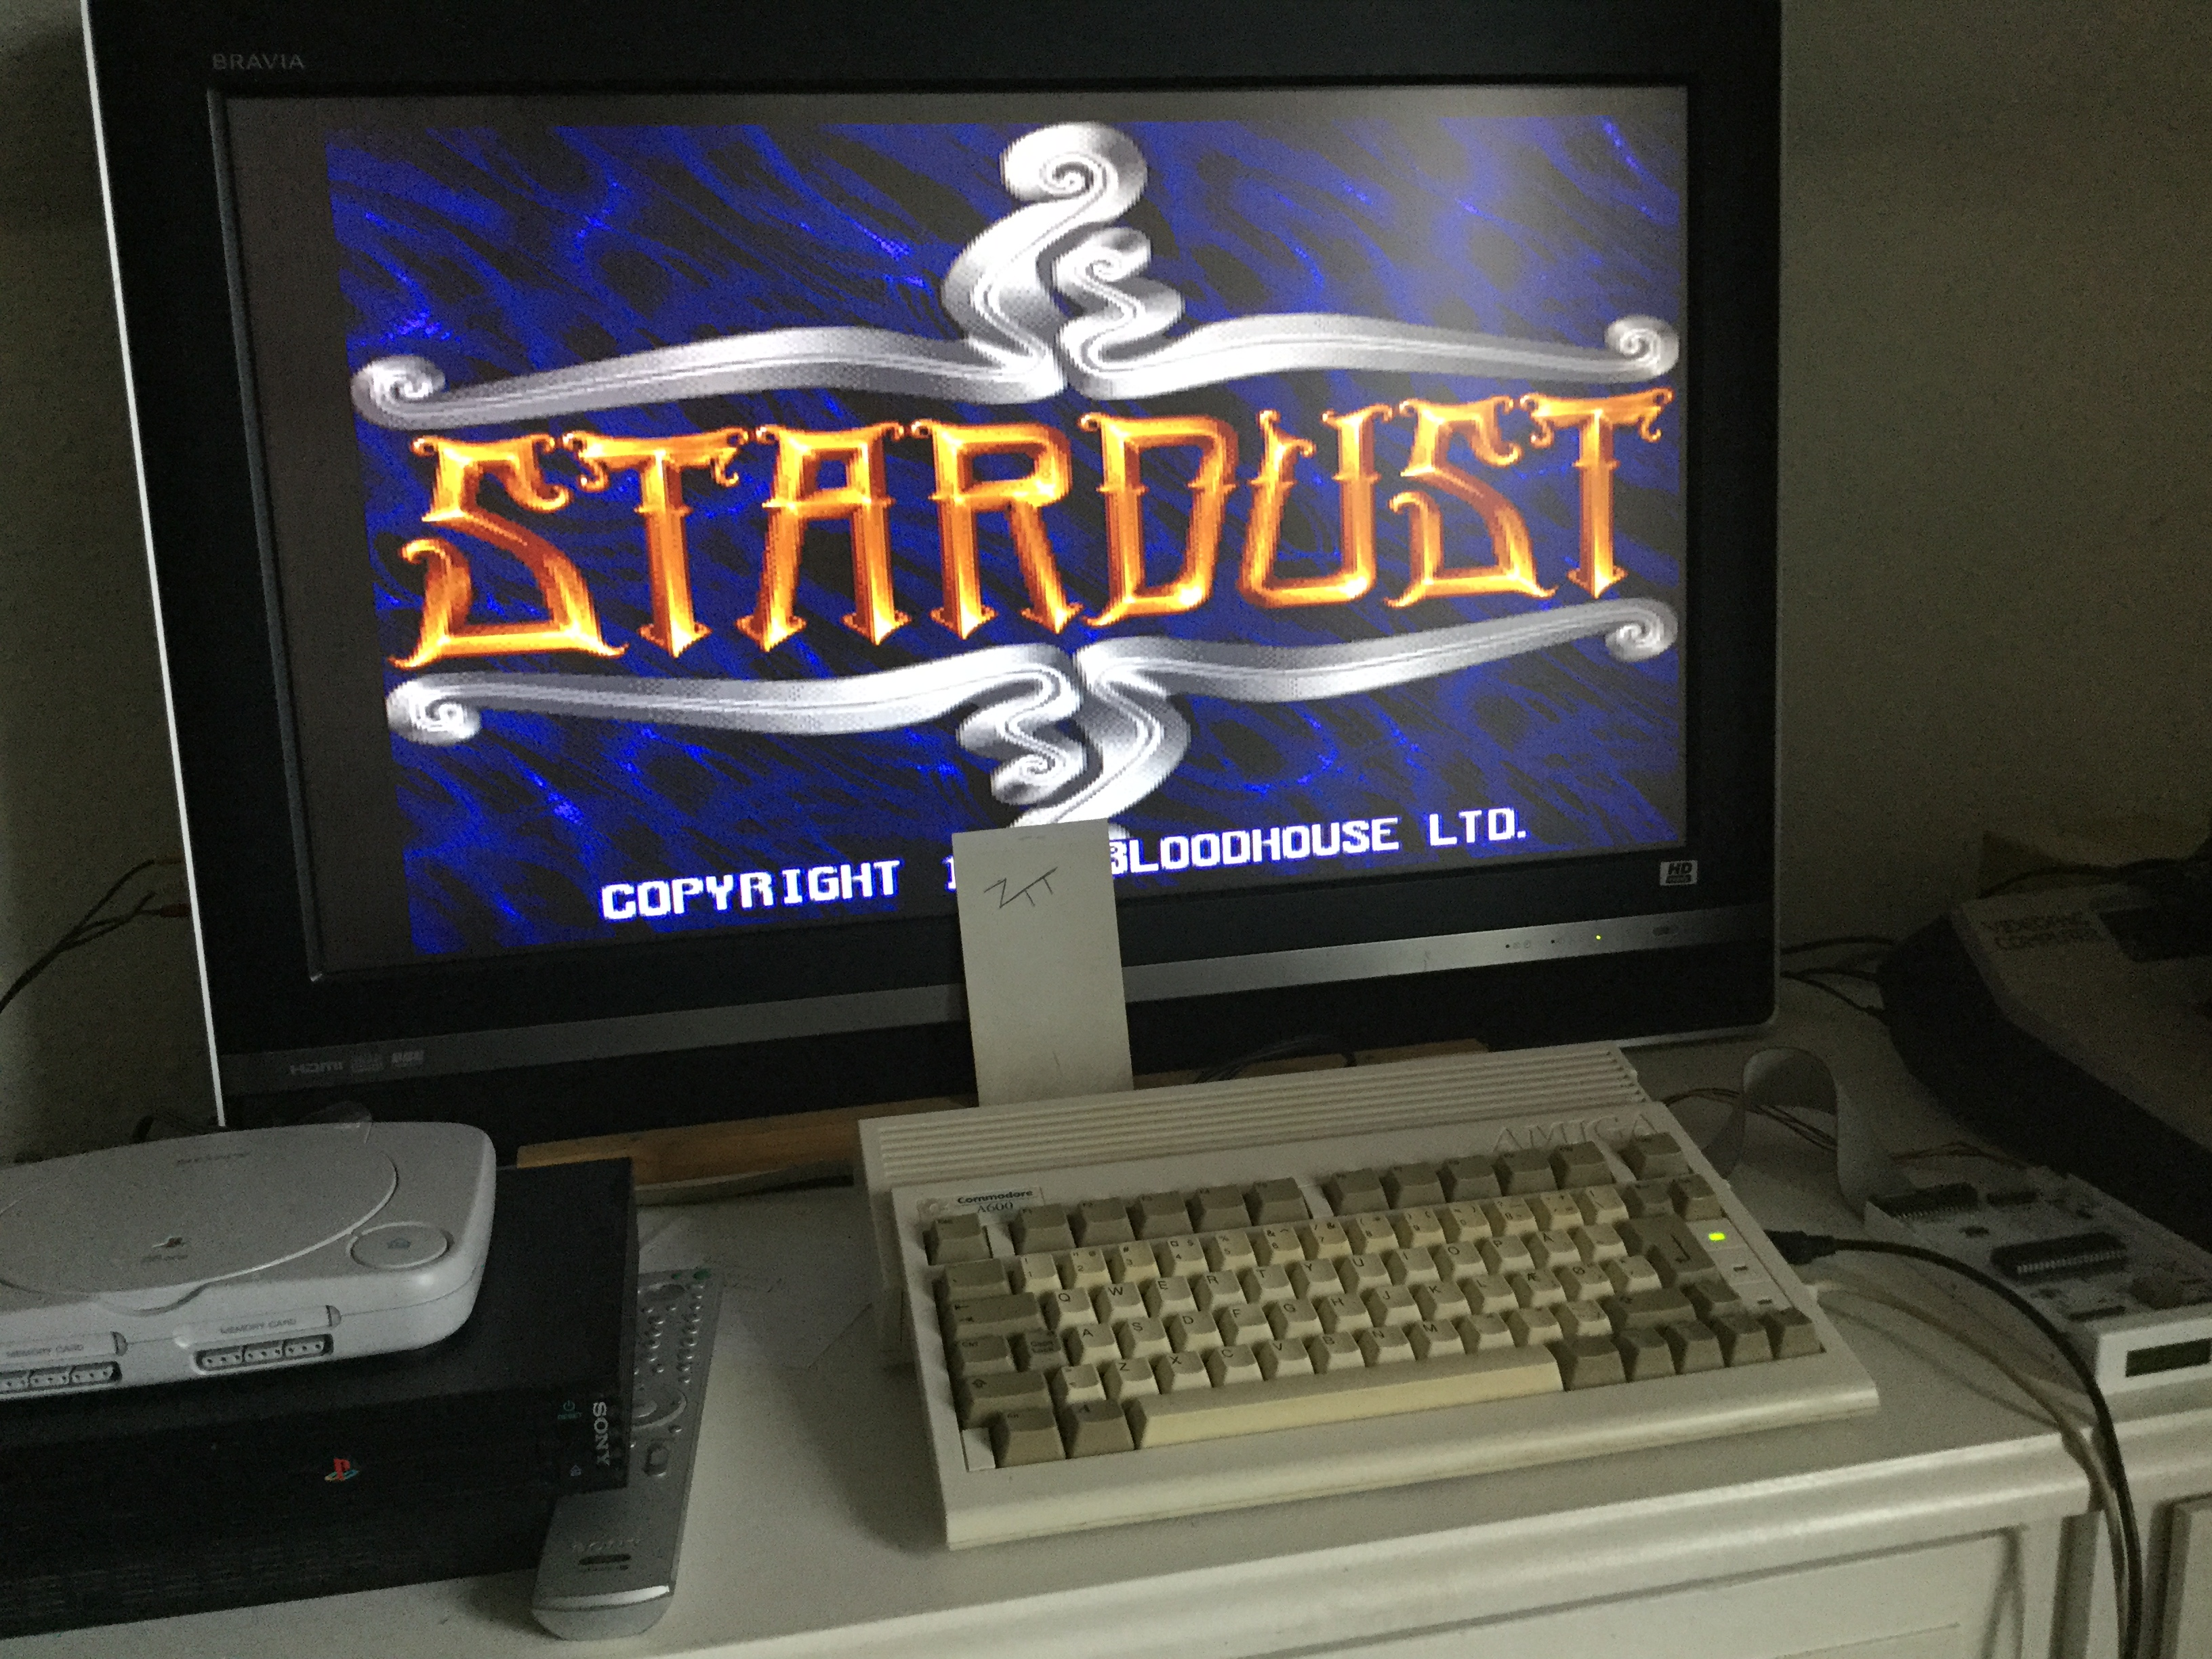 Frankie: Stardust (Amiga) 210,200 points on 2019-01-06 07:19:51